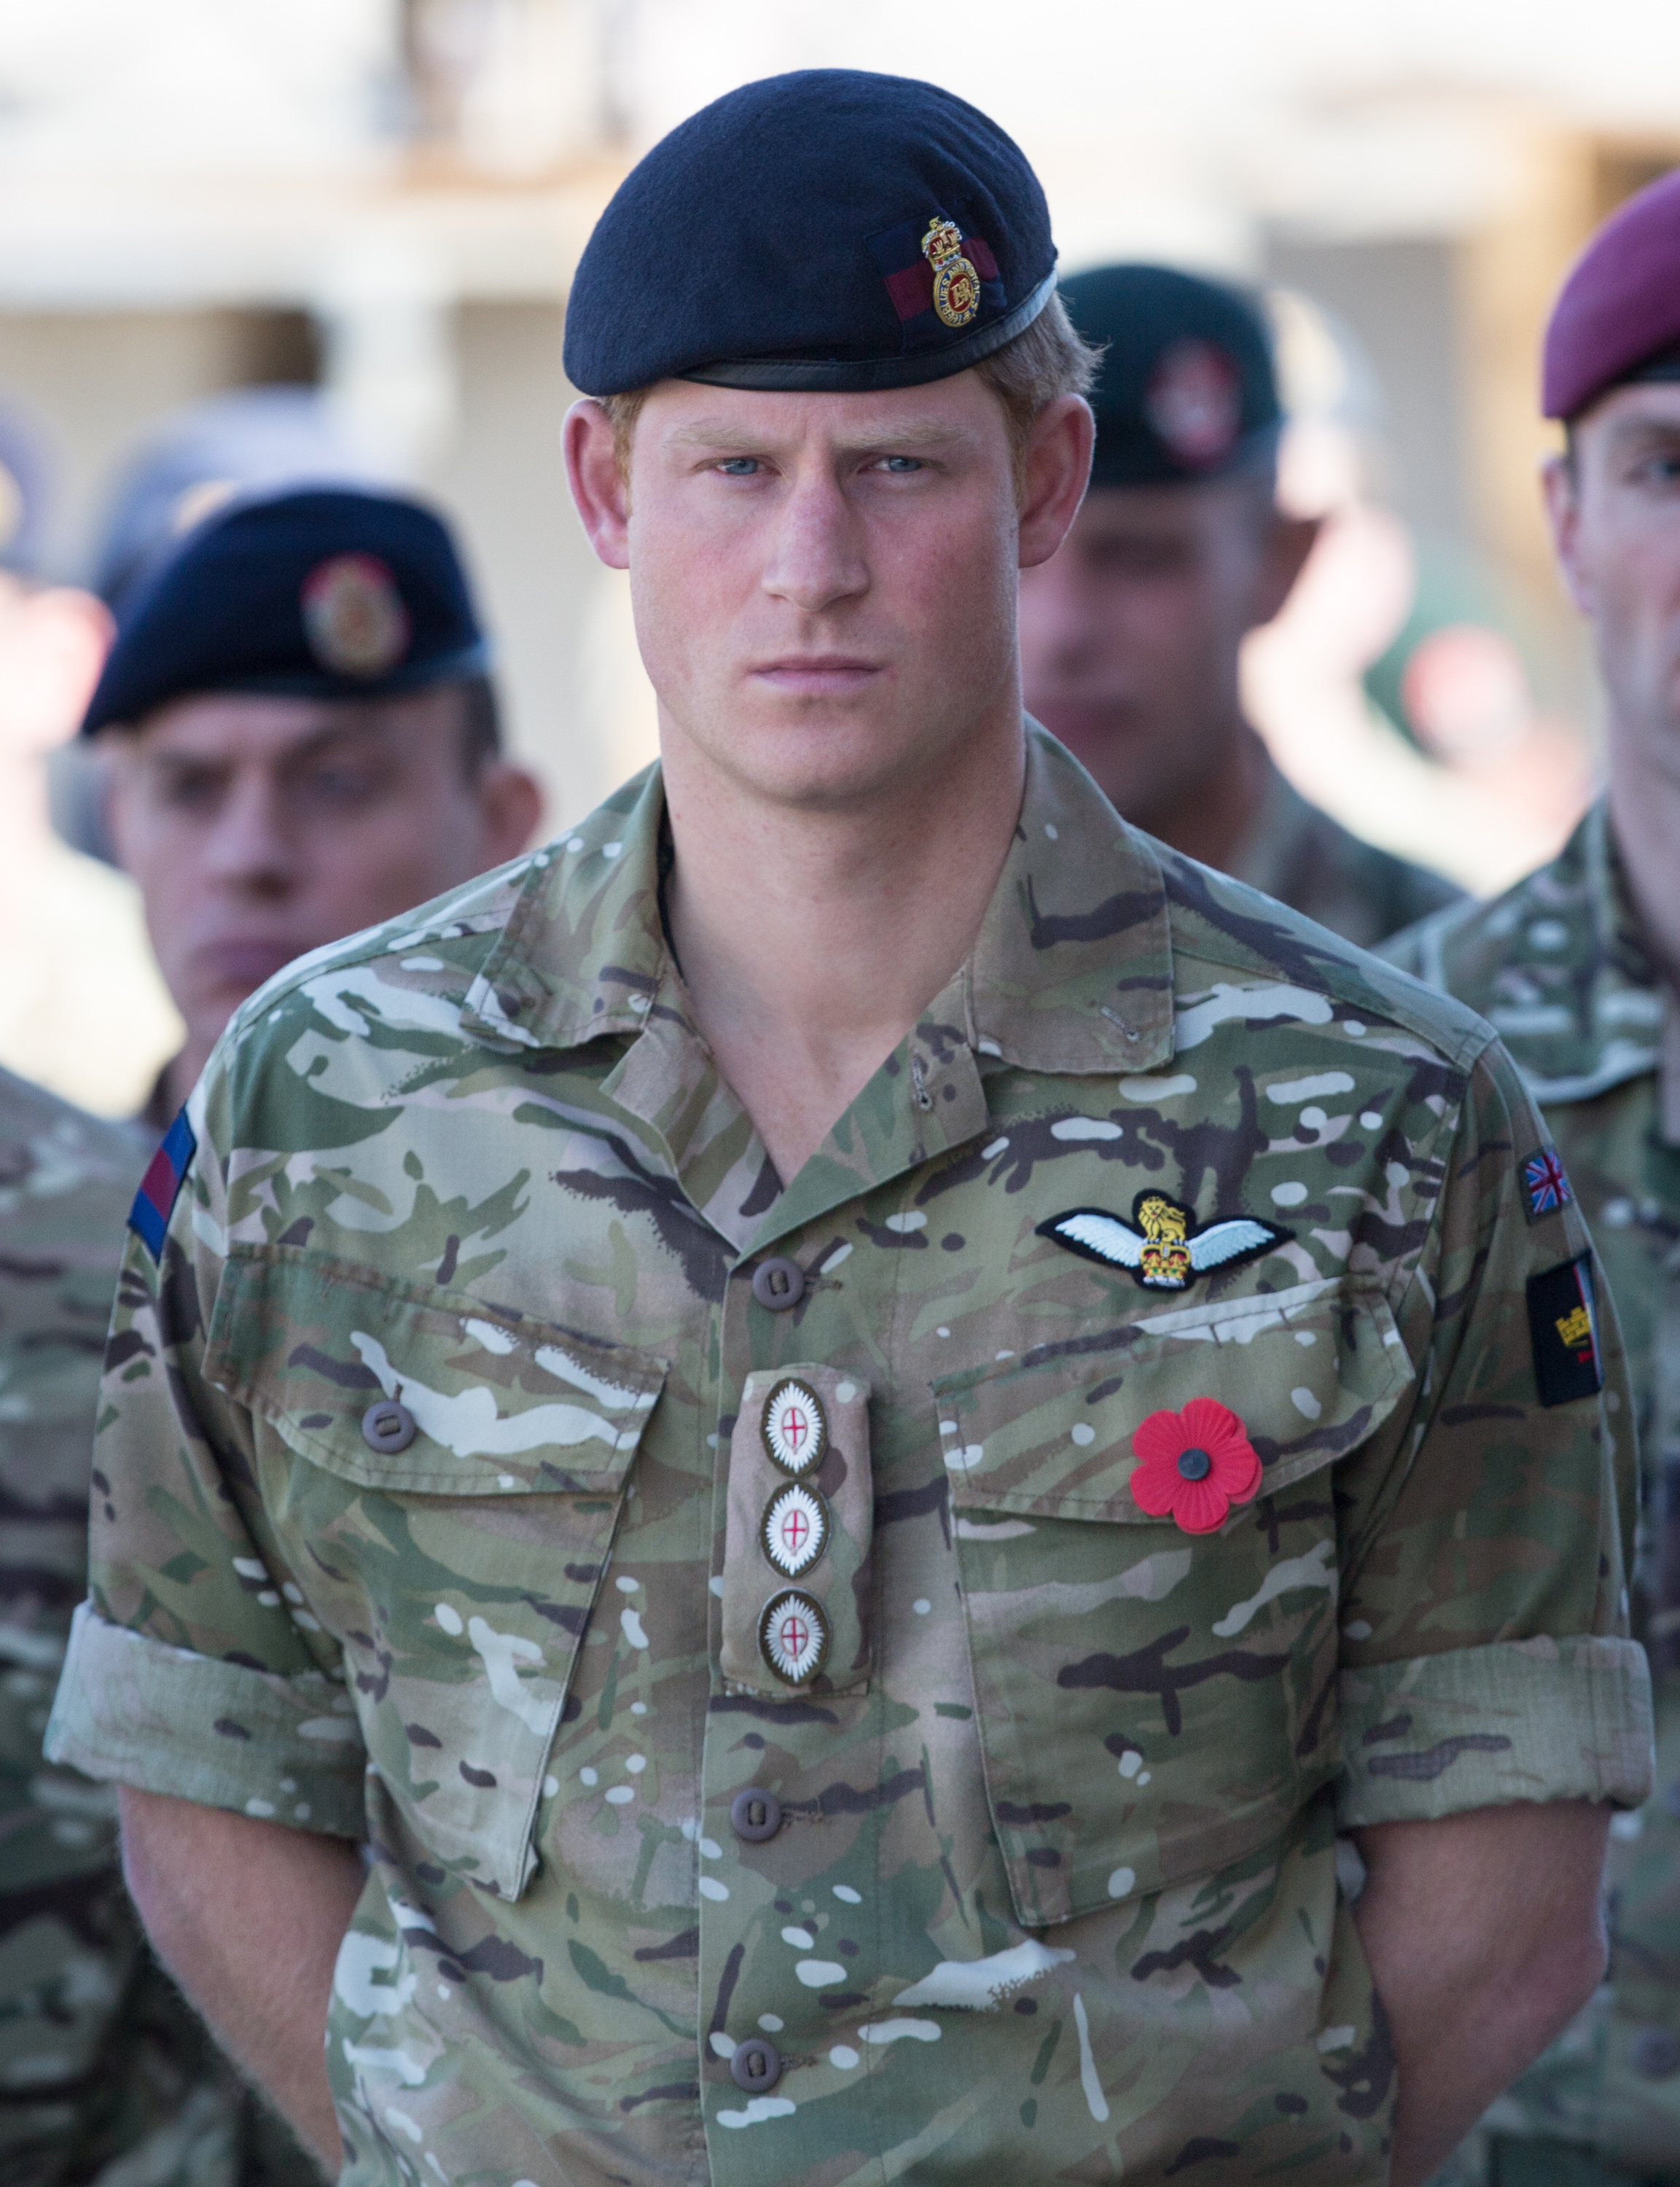 Prince Harry at a Remembrance Sunday service at Kandahar Airfield in Afghanistan on Nov. 9, 2014.